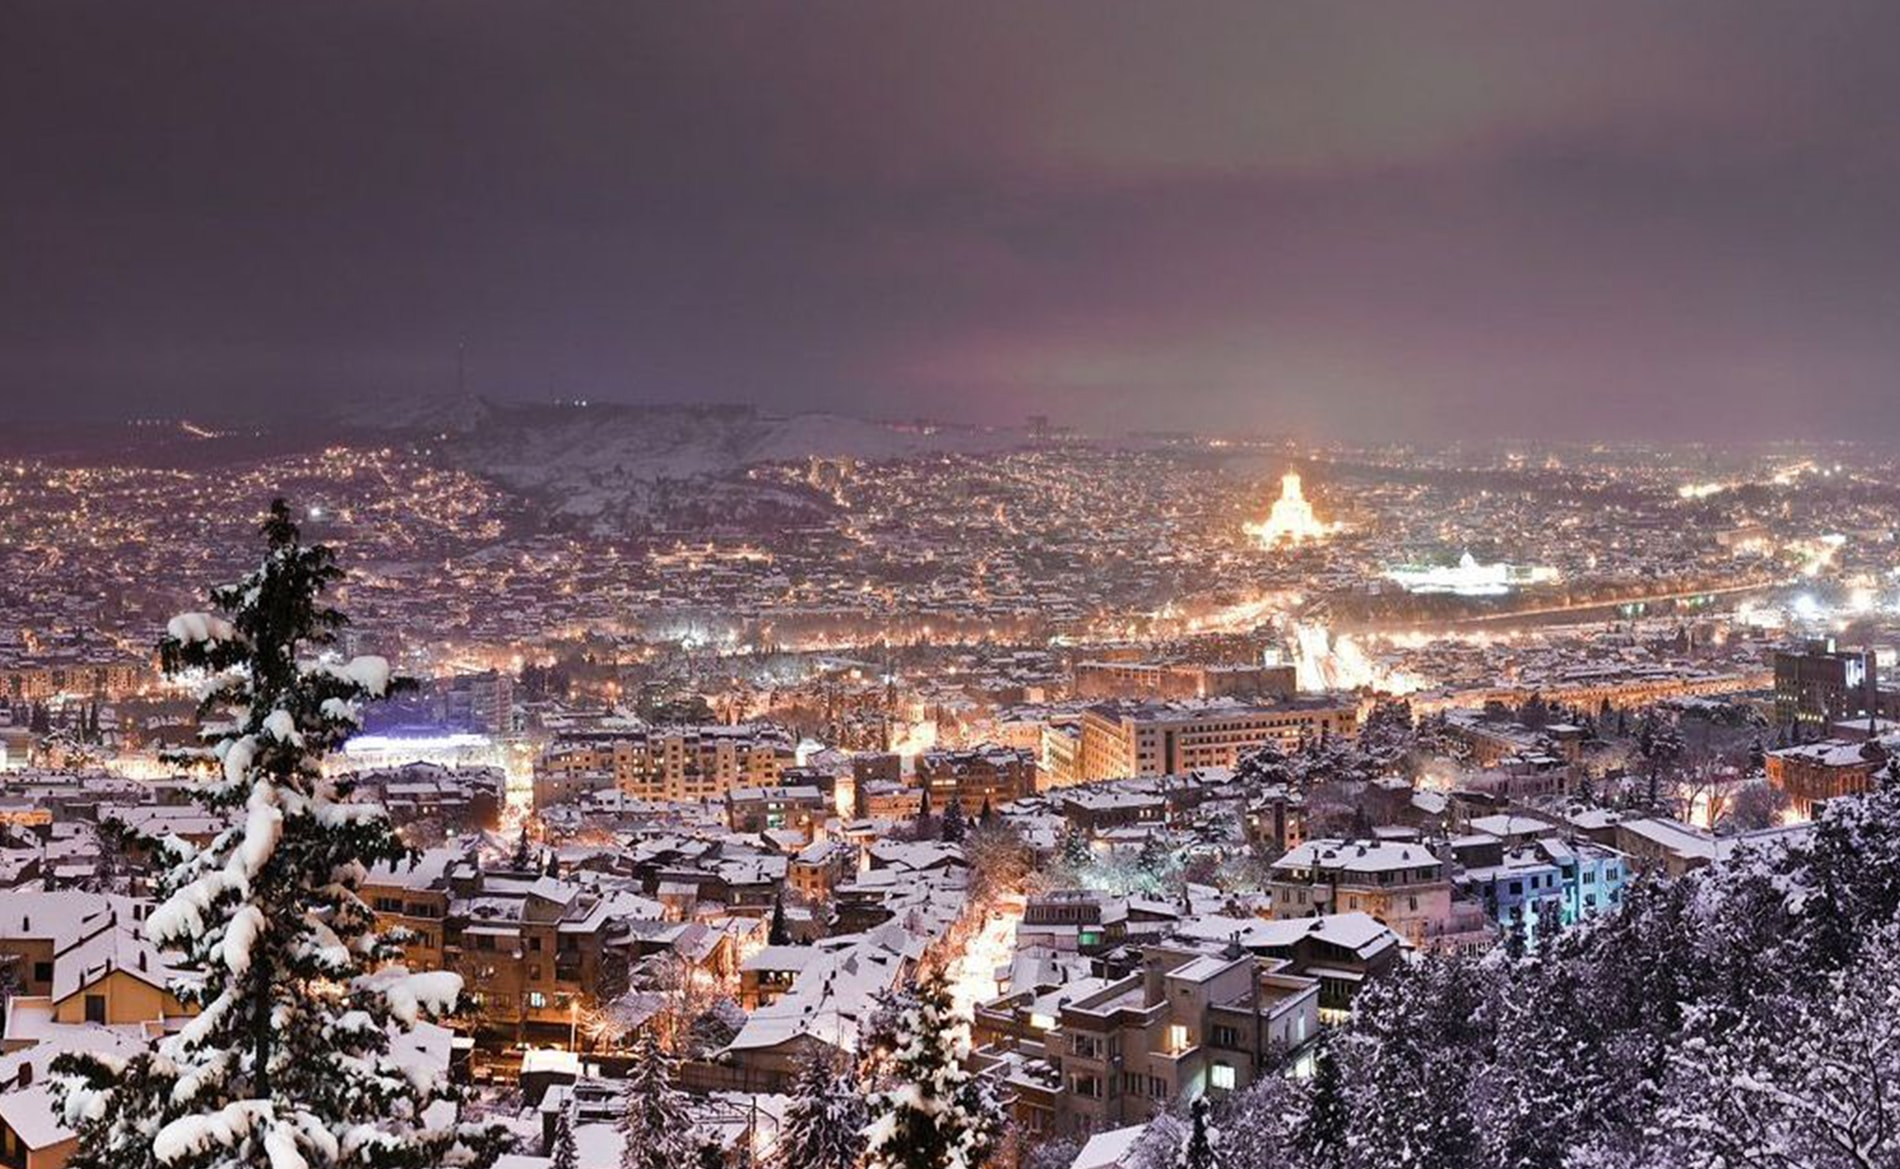 Tbilisi Mayor's Office to Spend $ 700,000 on New Year's Celebrations